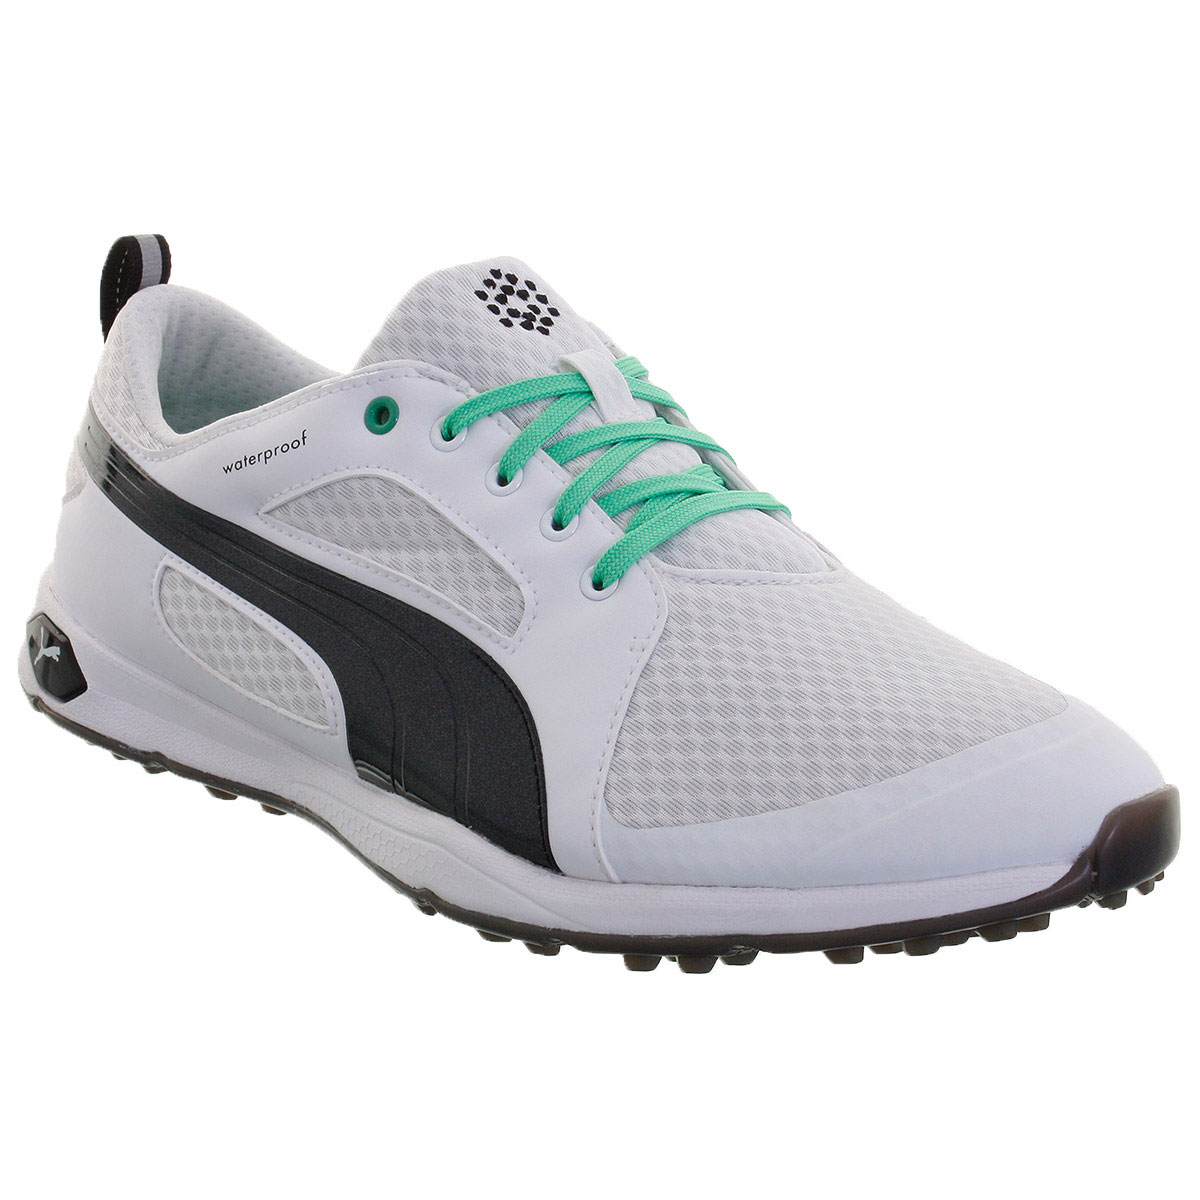 4029954dfc4491 puma golf shoes for sale   OFF75% Discounts